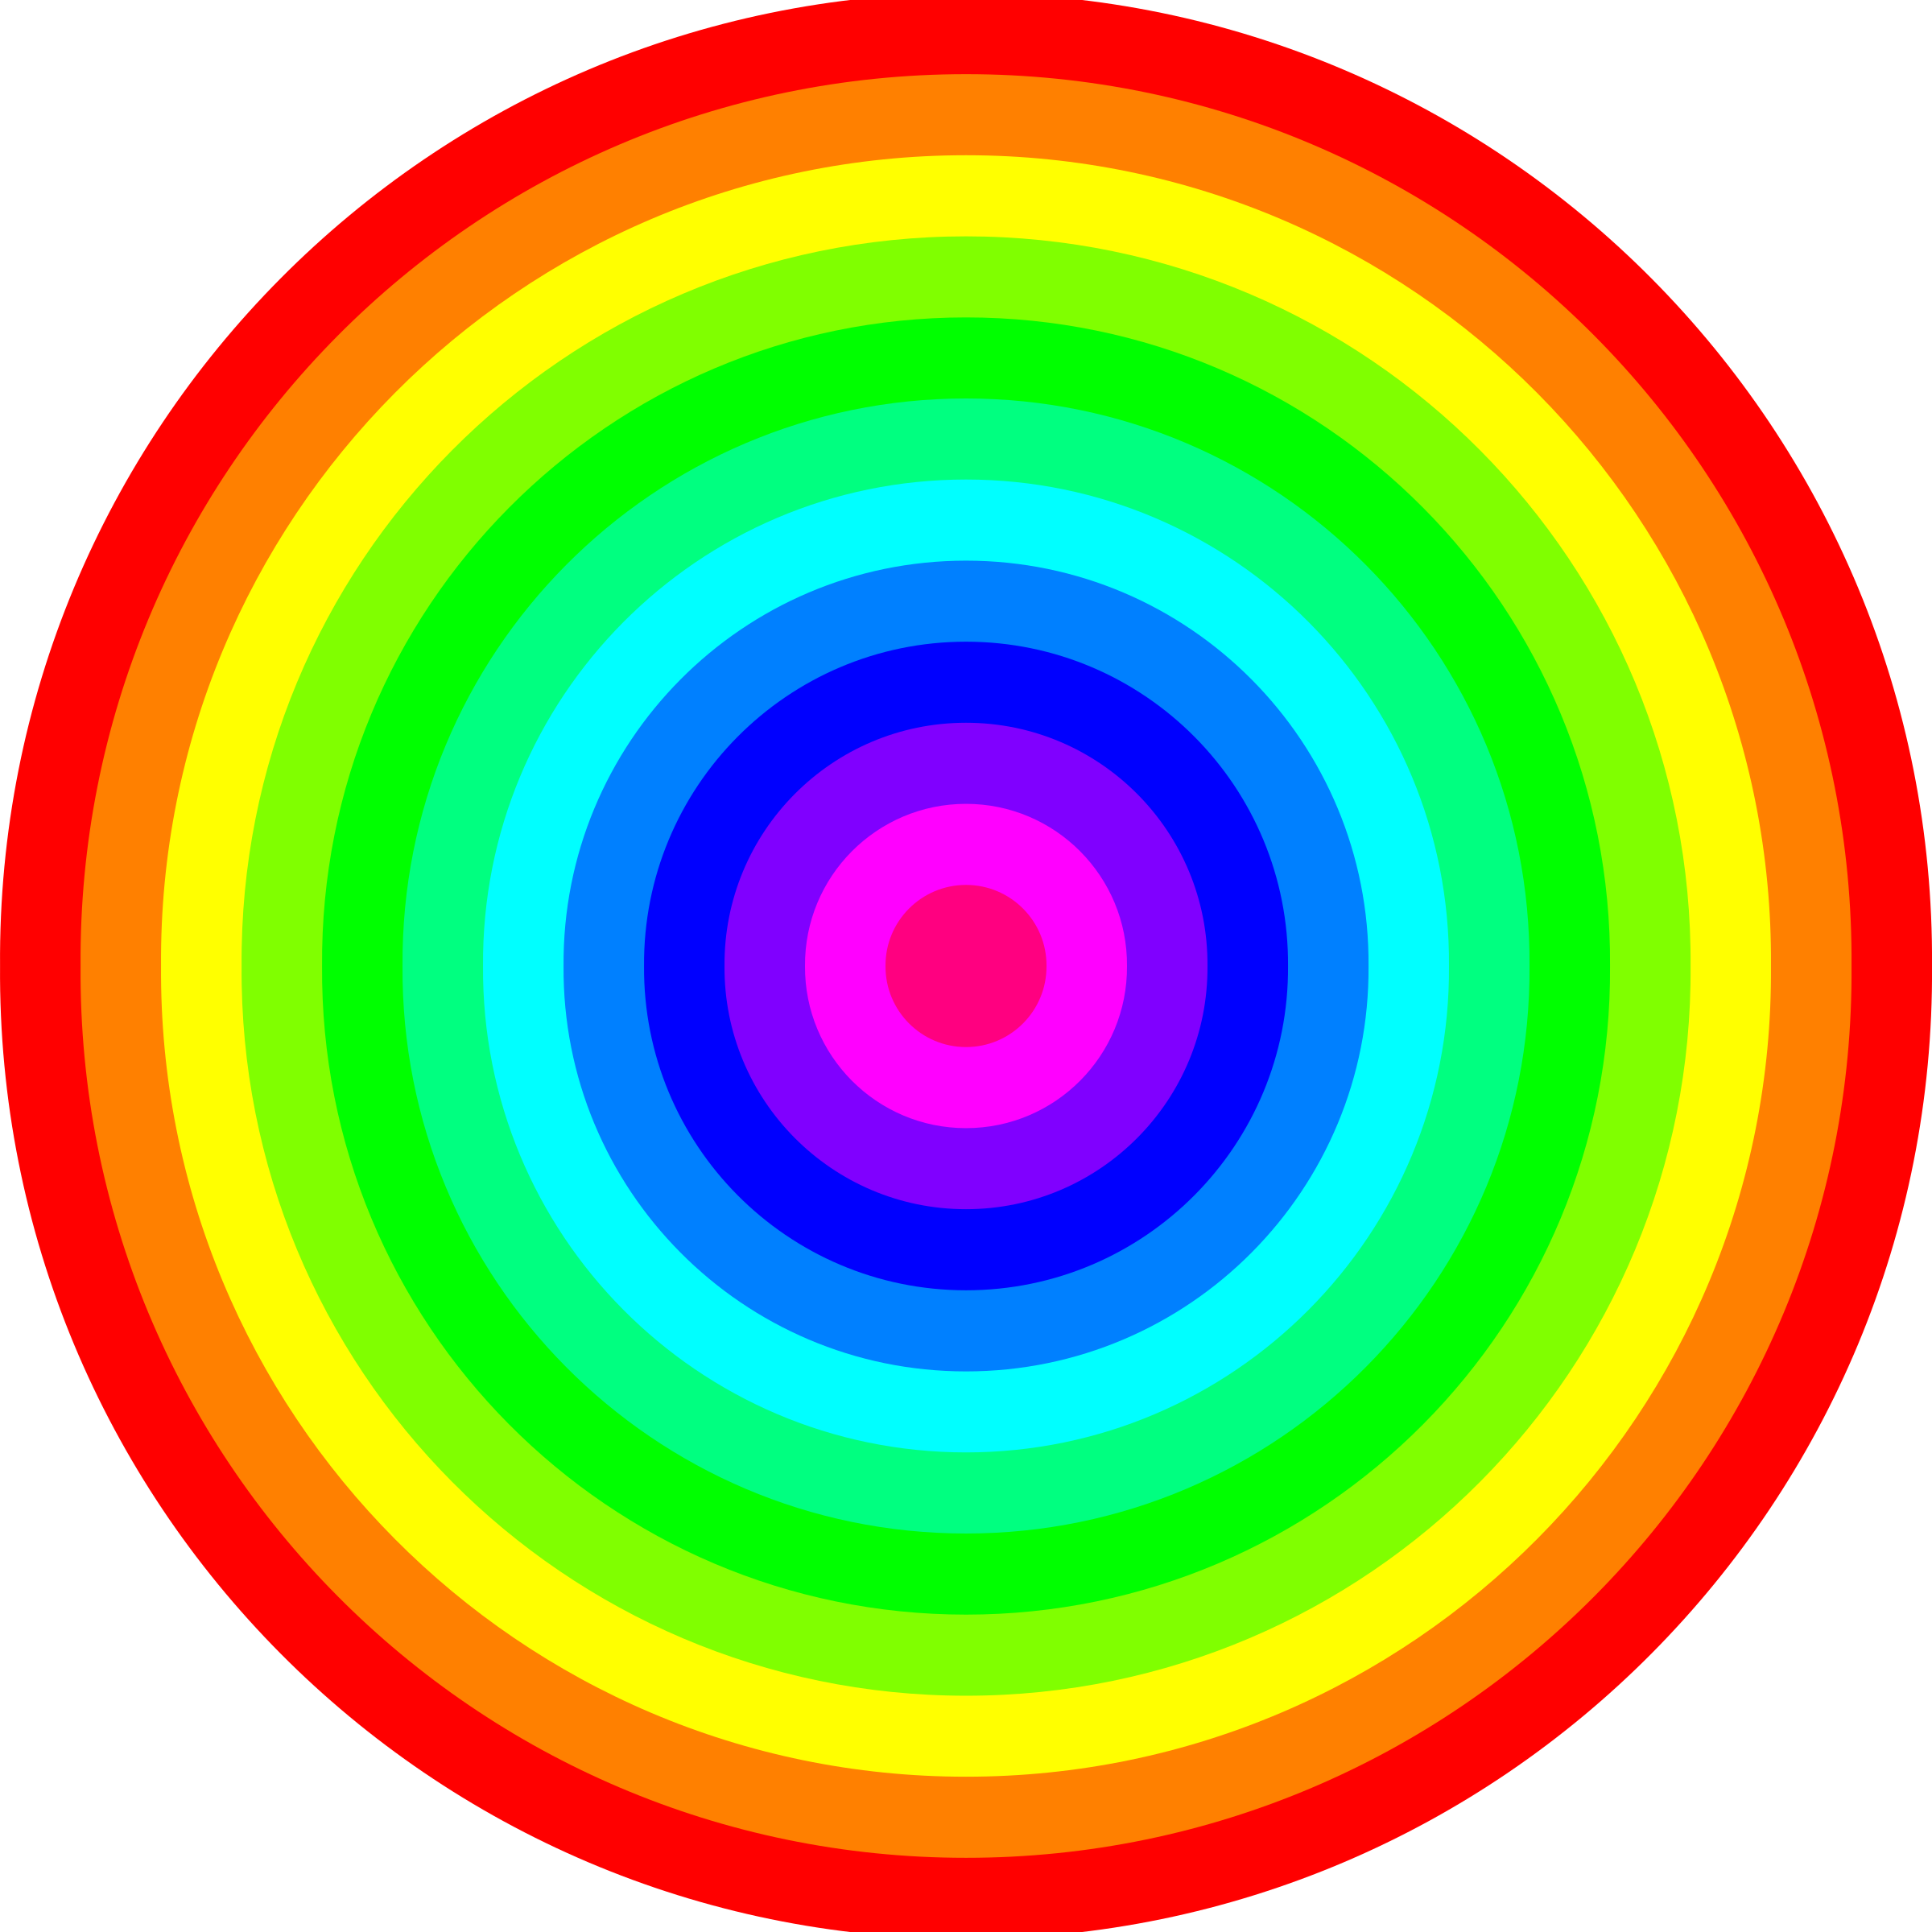 12 color rainbow circles by 10binary